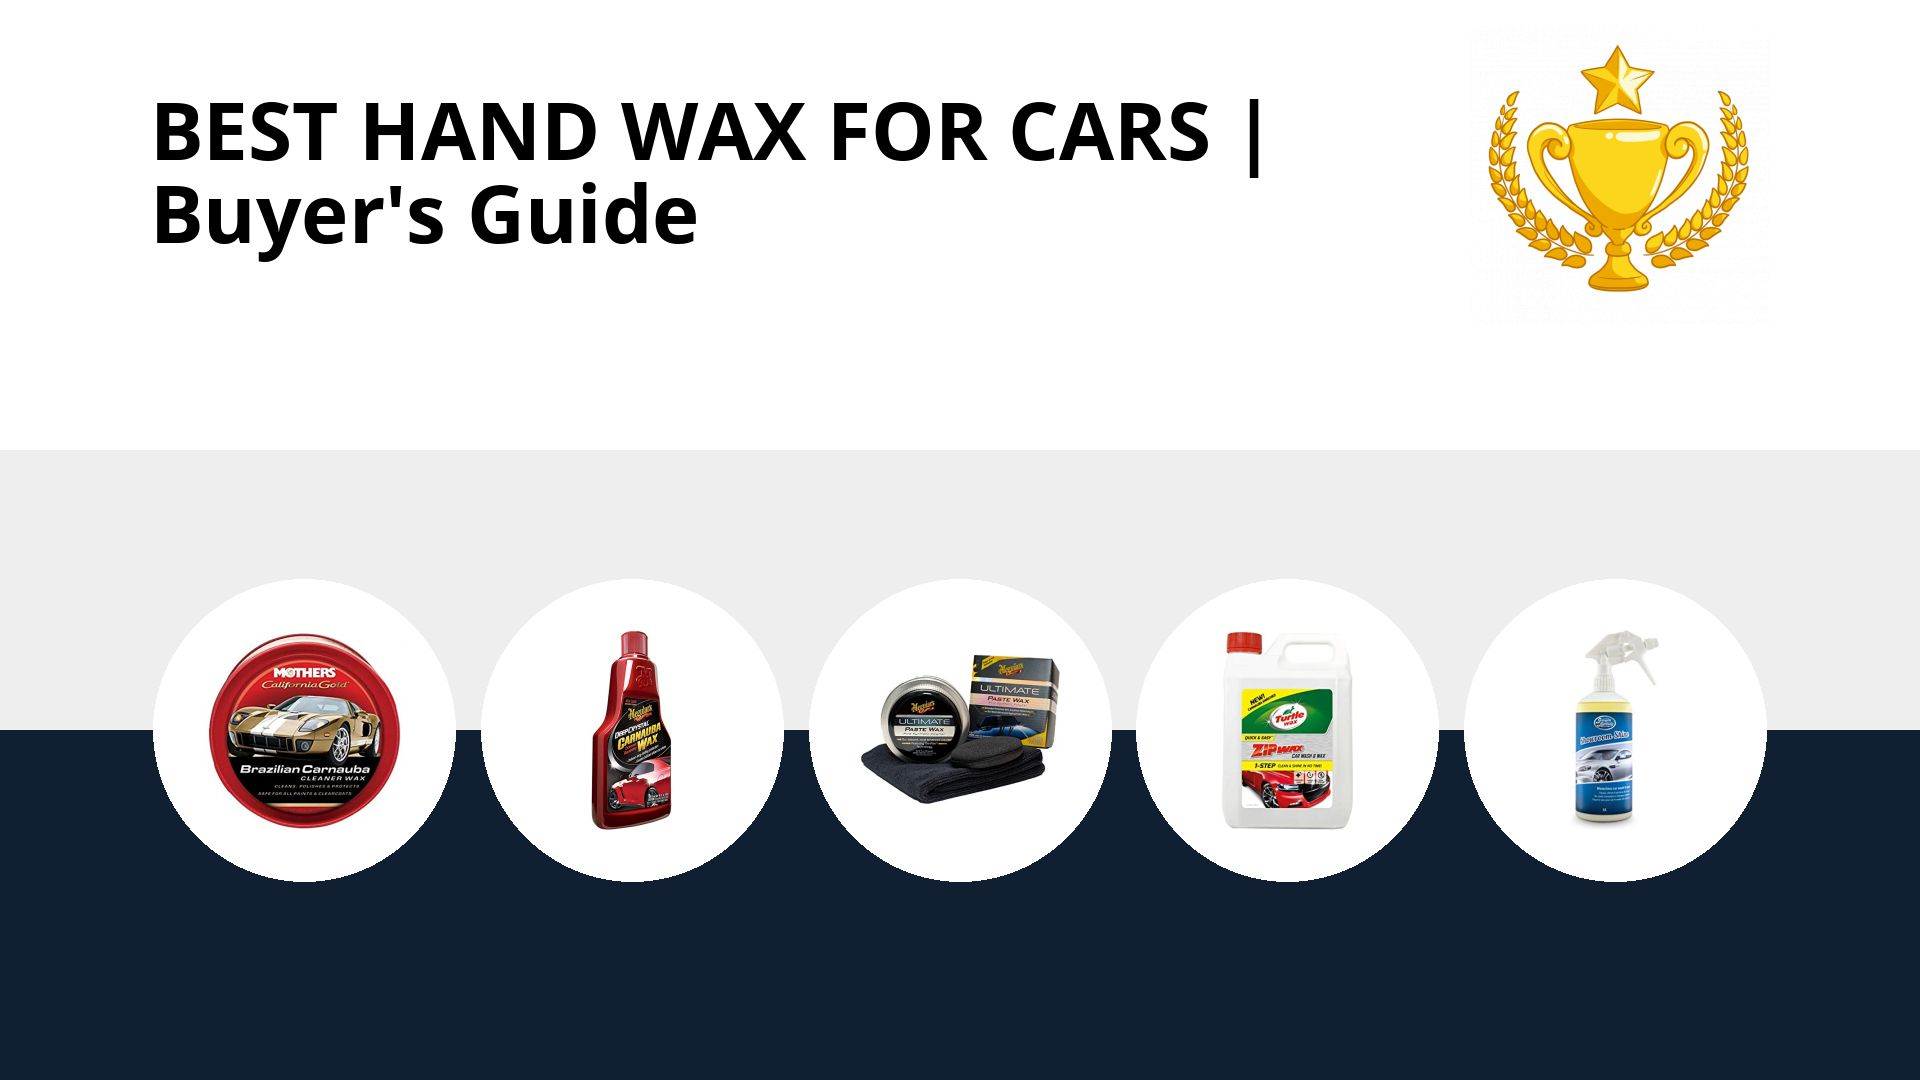 Best Hand Wax For Cars: image